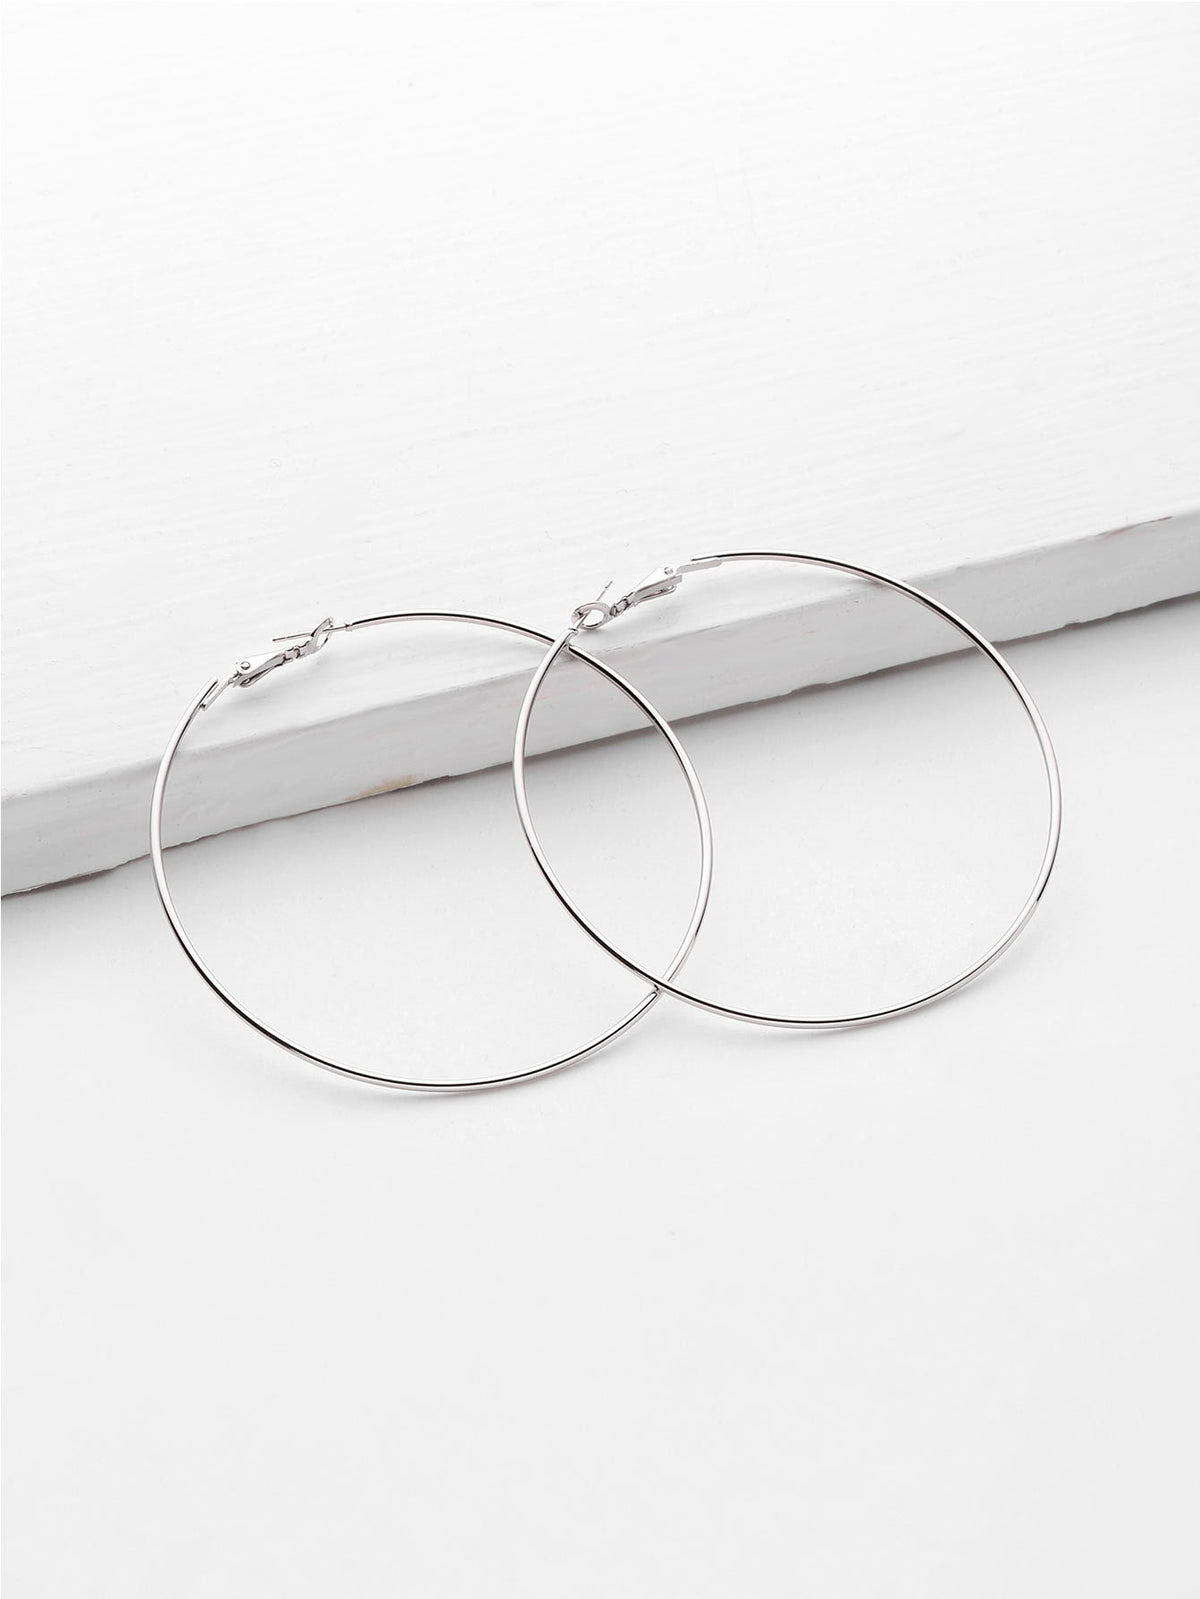 Minimalist Metal Hoop Earrings